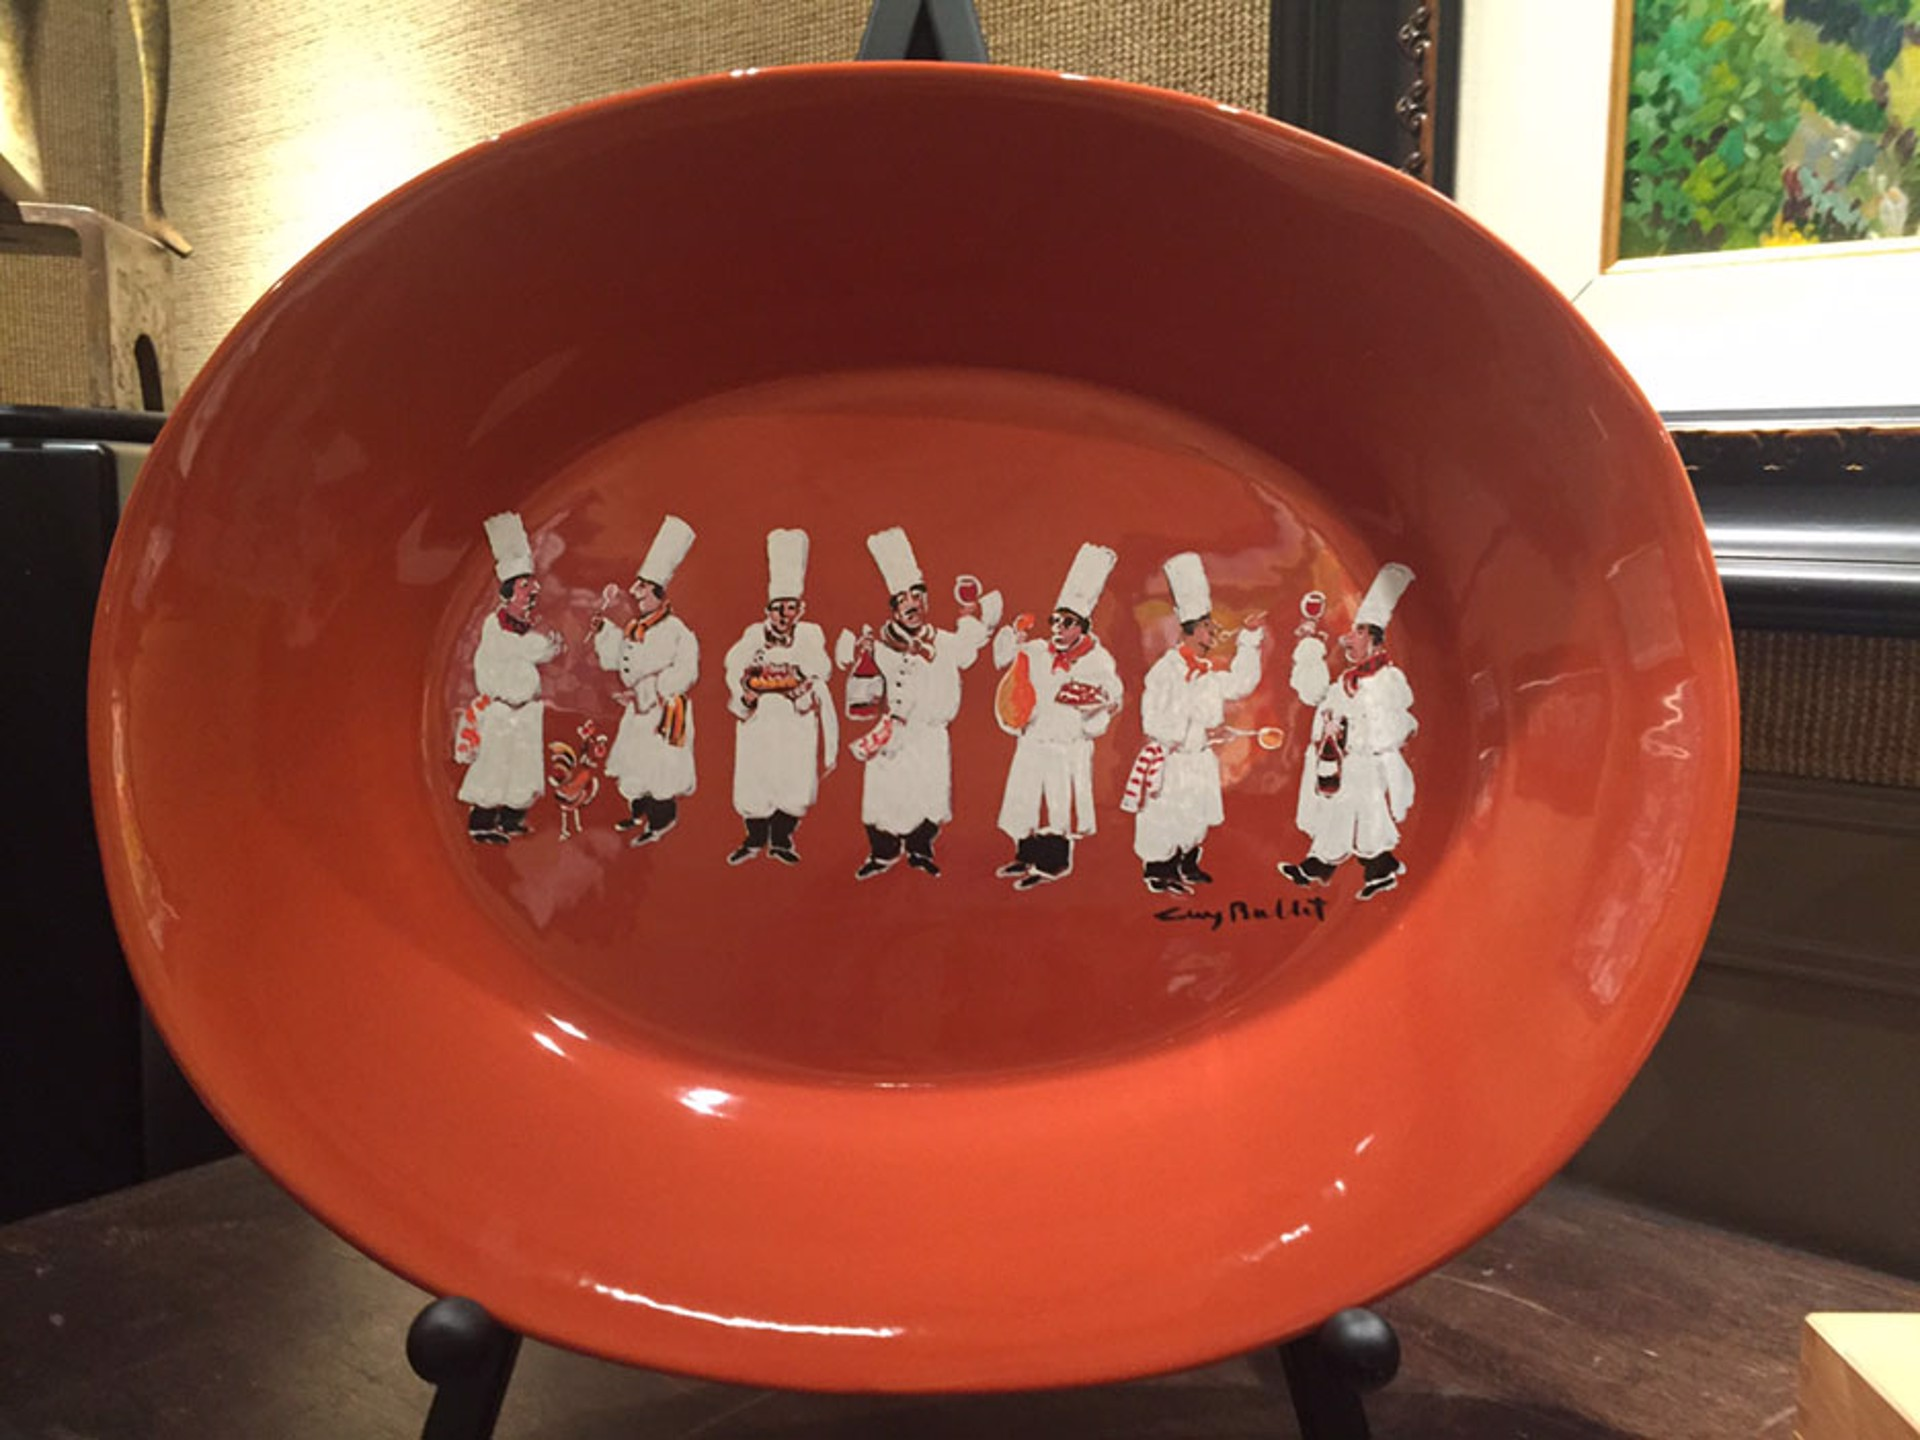 Platter (Gathering Of Chefs) by Guy Buffet